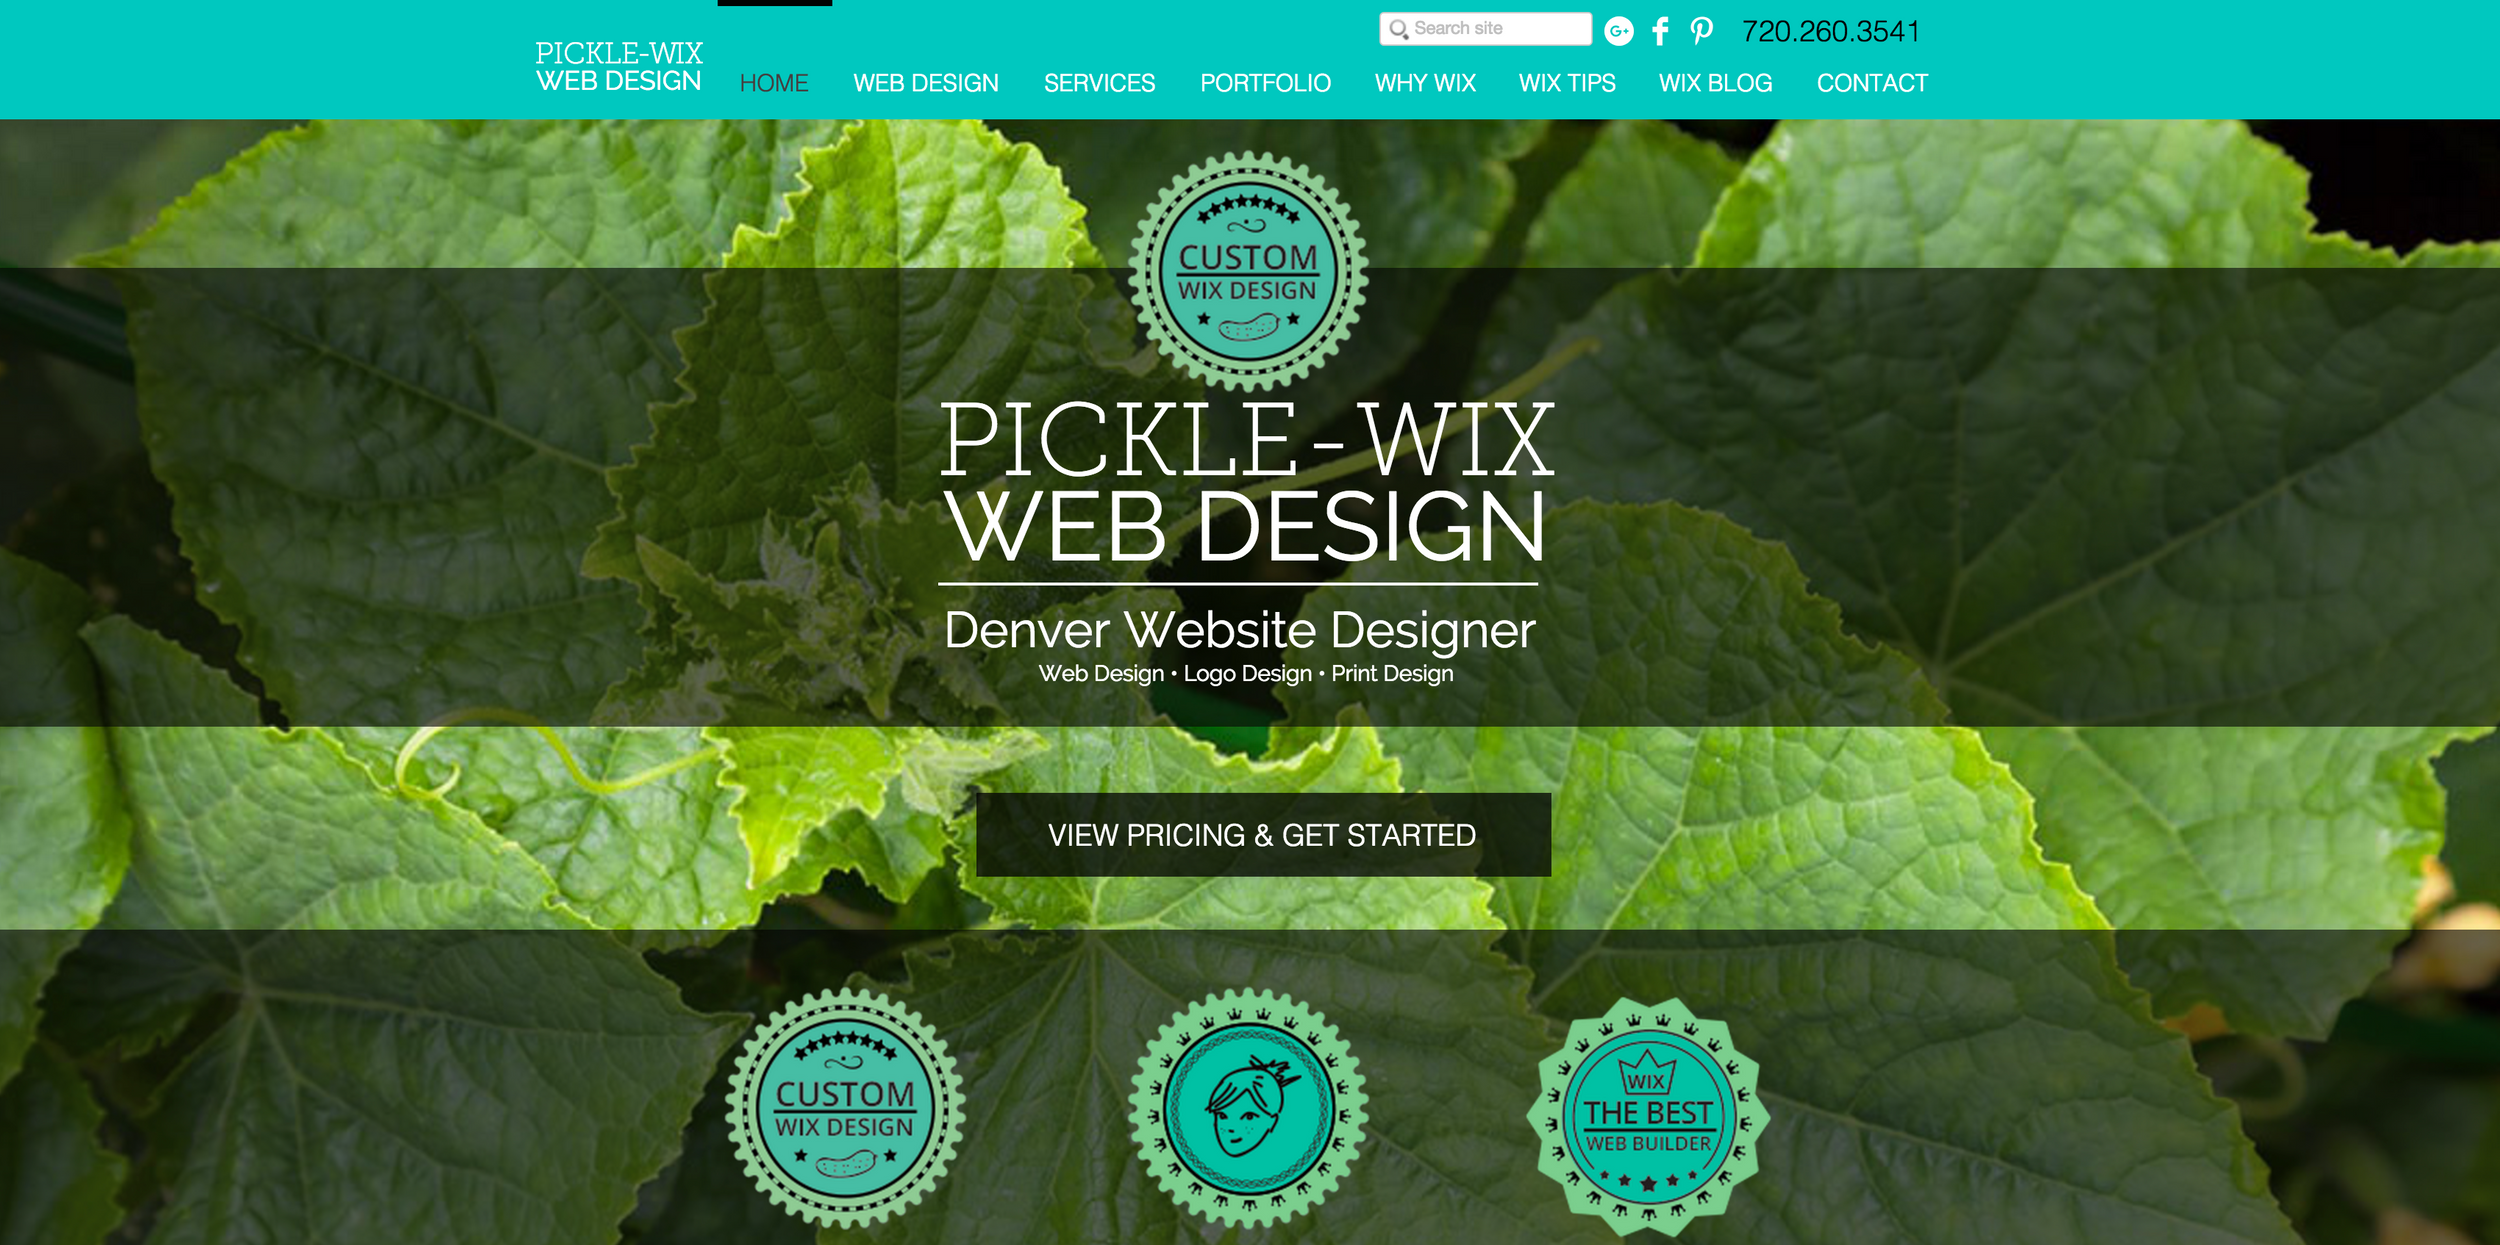 Wix Designer | Denver Web Design | Pickle-Wix Web Design